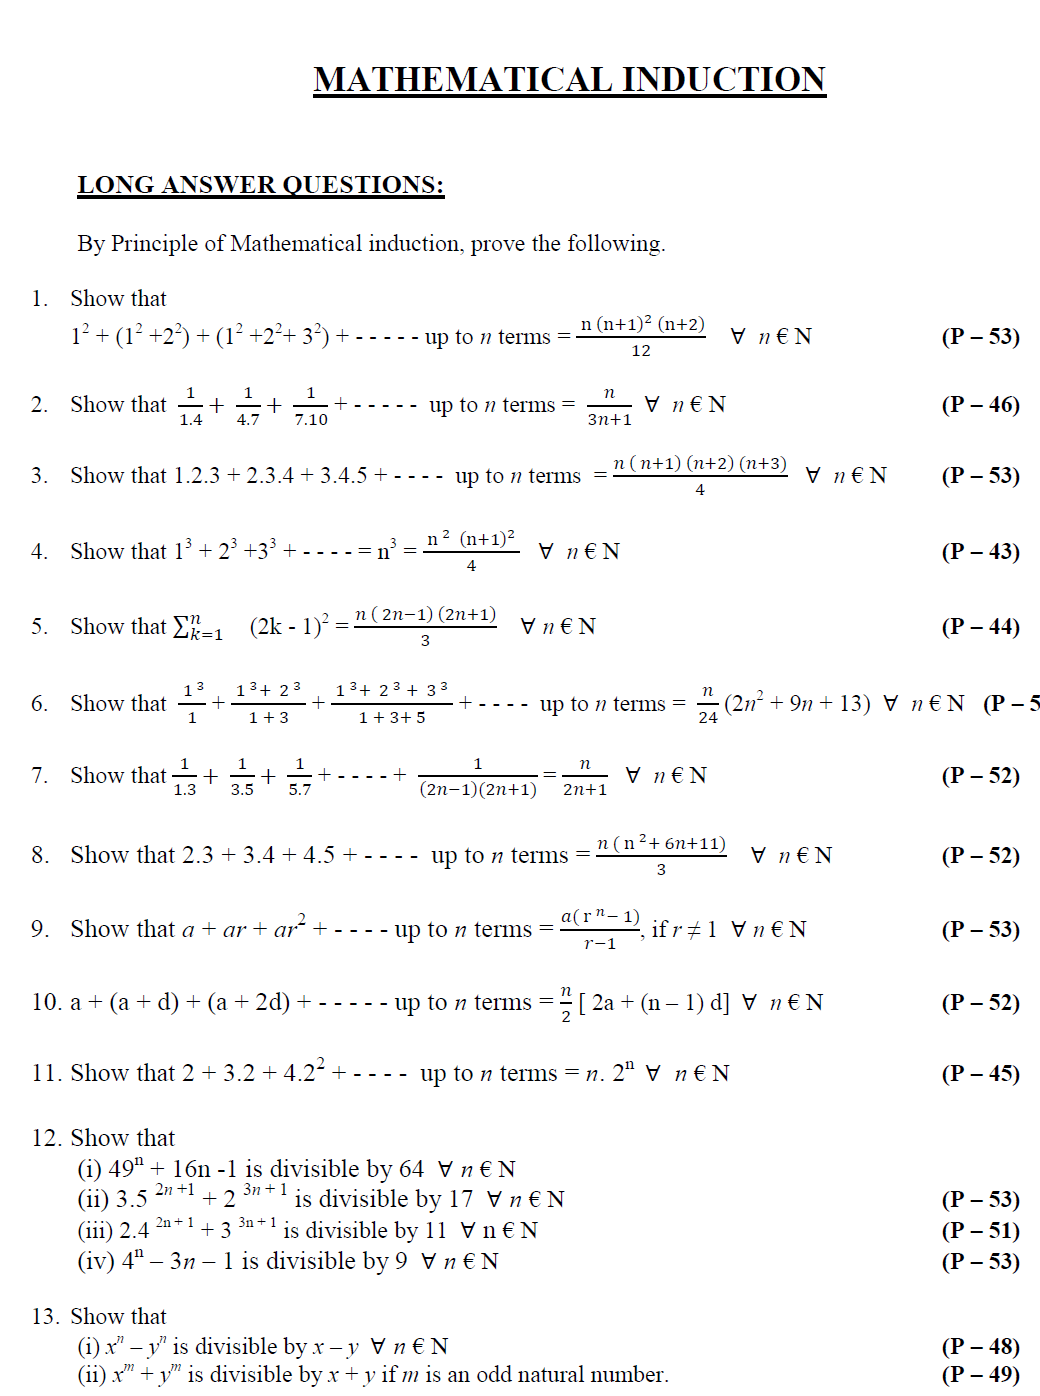 Worksheets Maths Questions fresh papad maths 1a important questions questions